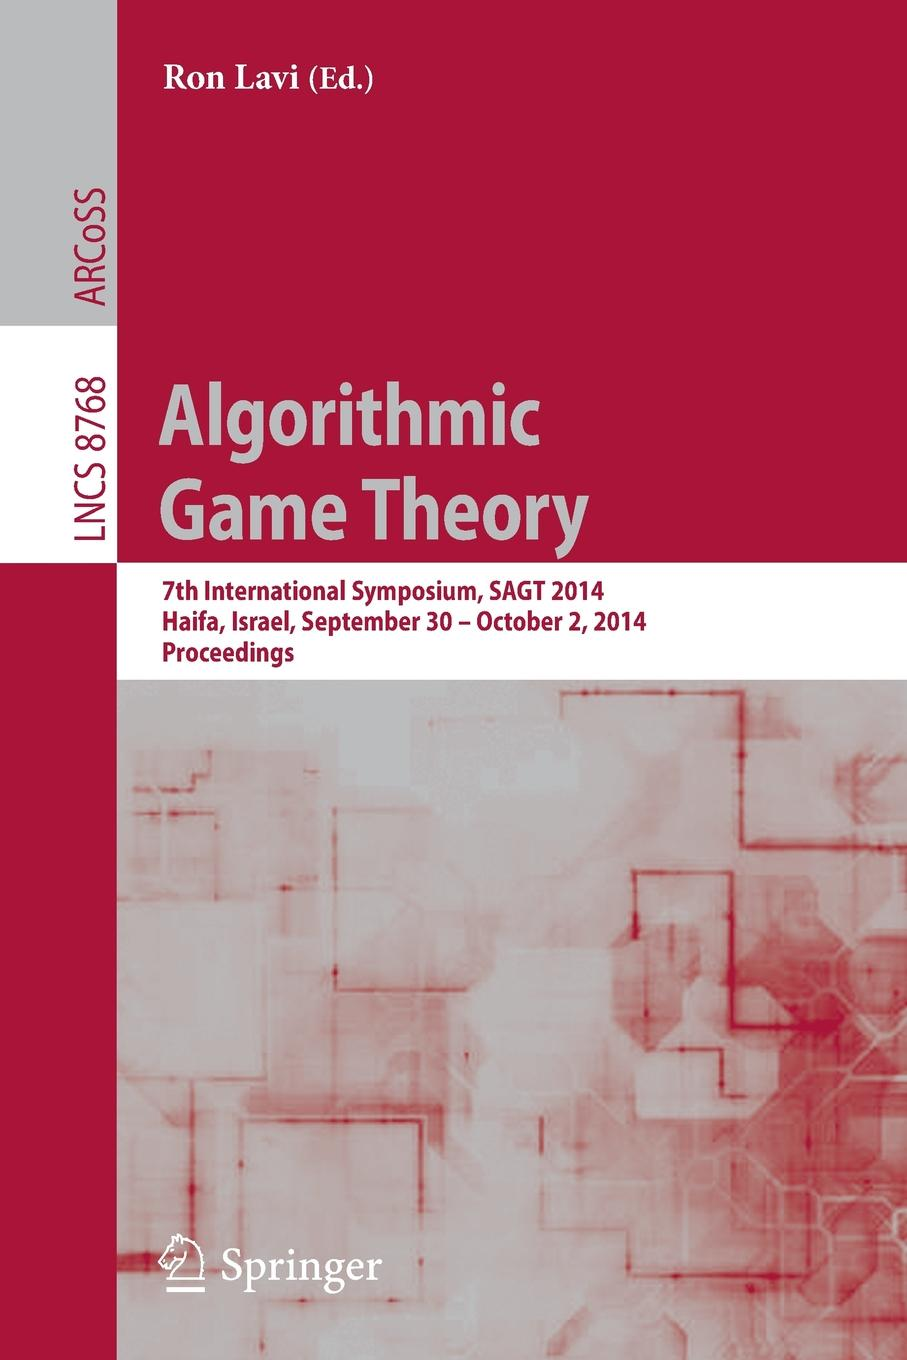 Algorithmic Game Theory. 7th International Symposium, SAGT 2014, Haifa, Israel, September 30 -- October 2, Proceedings